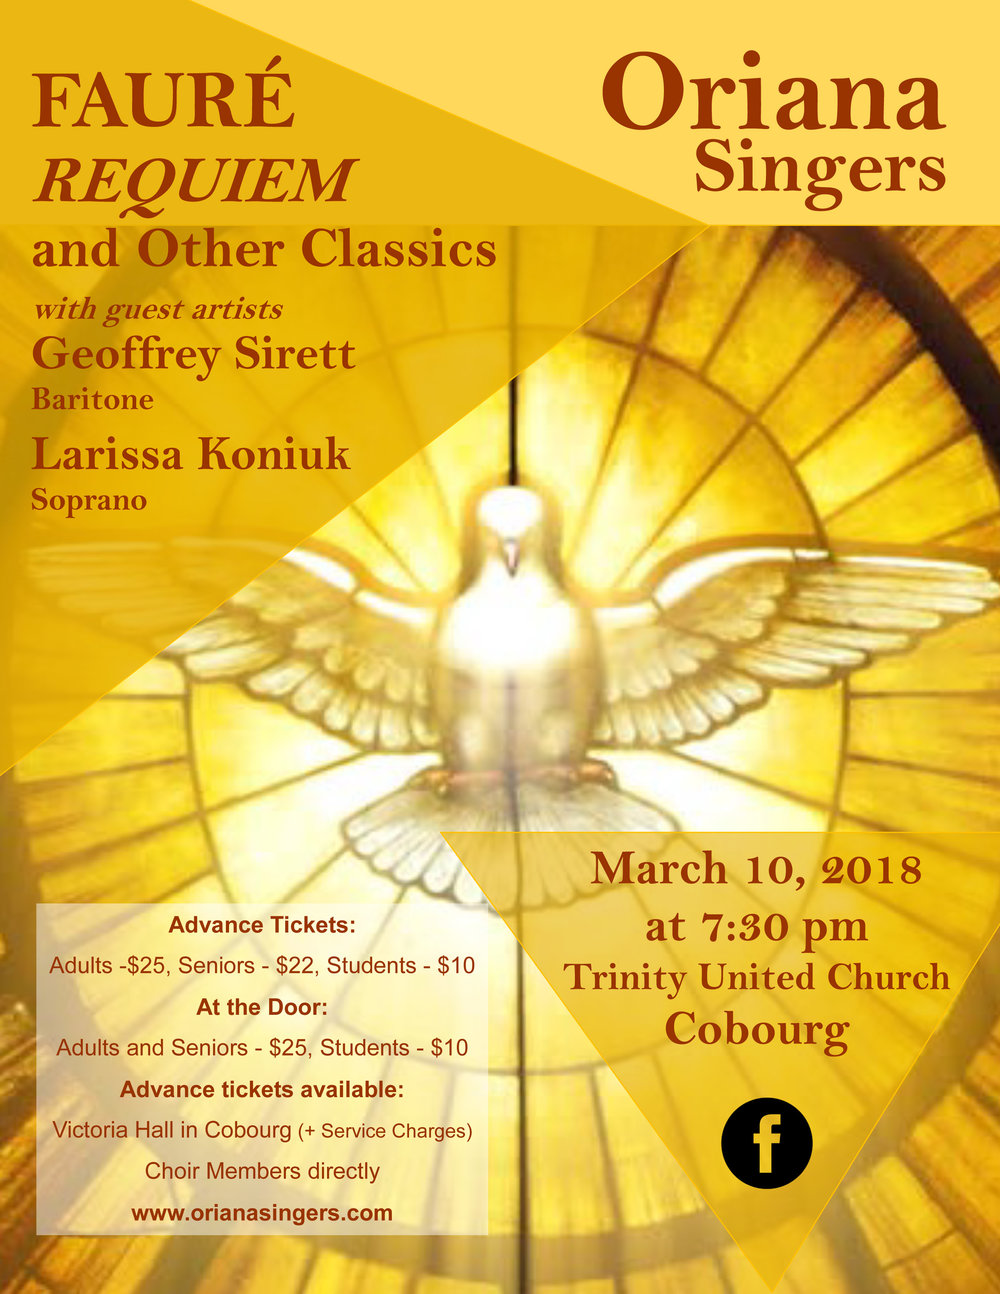 Faure Requiem and Other Classics Poster fixed.jpg